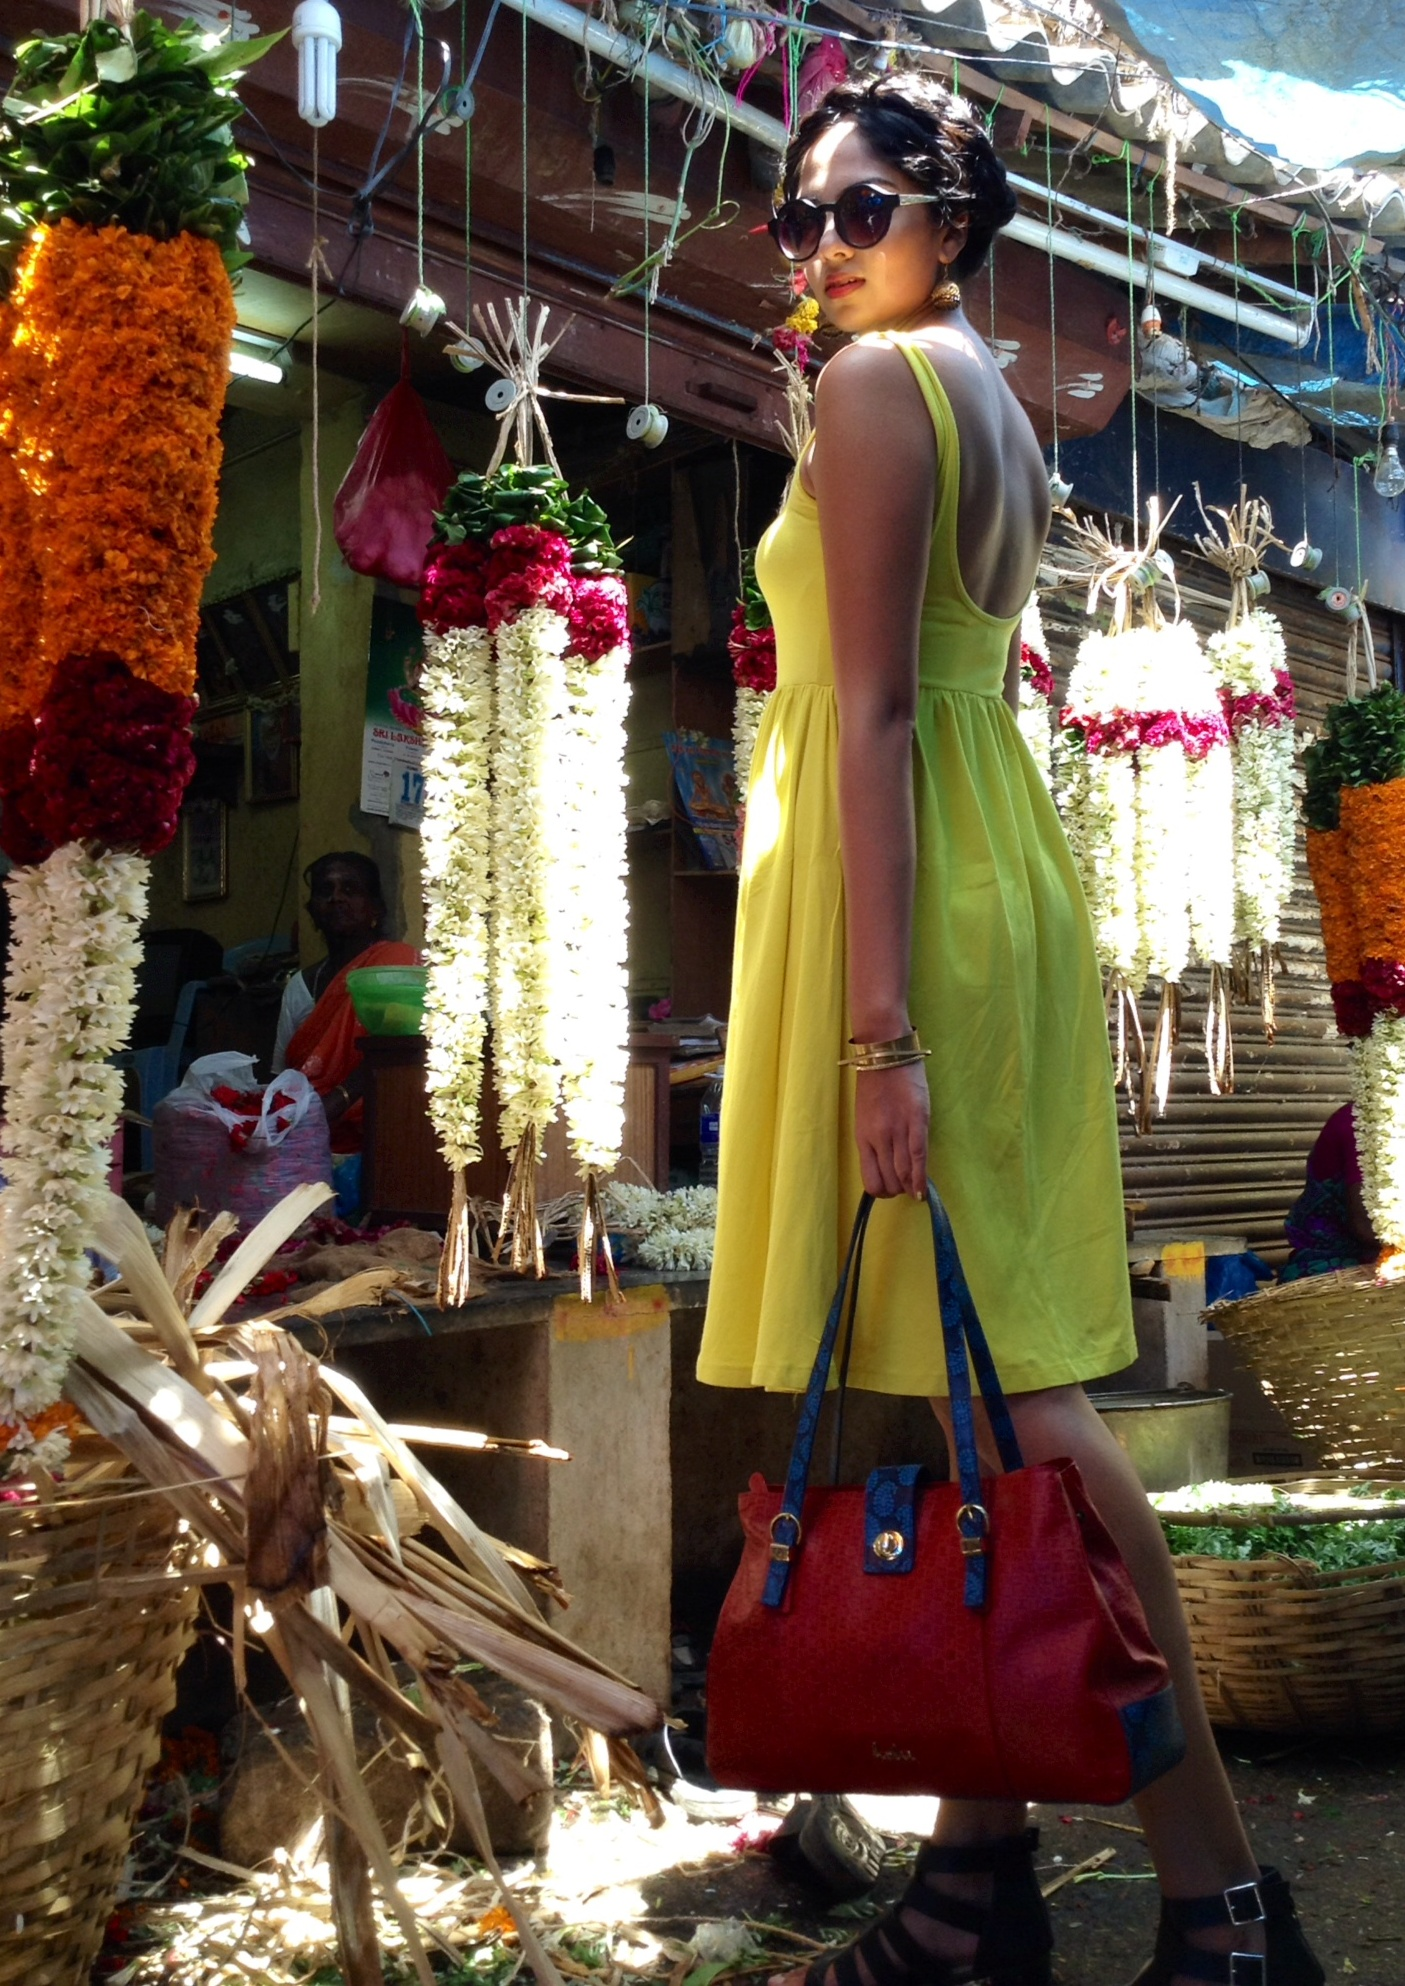 Holii's creative head with Tamarind shoulder bag